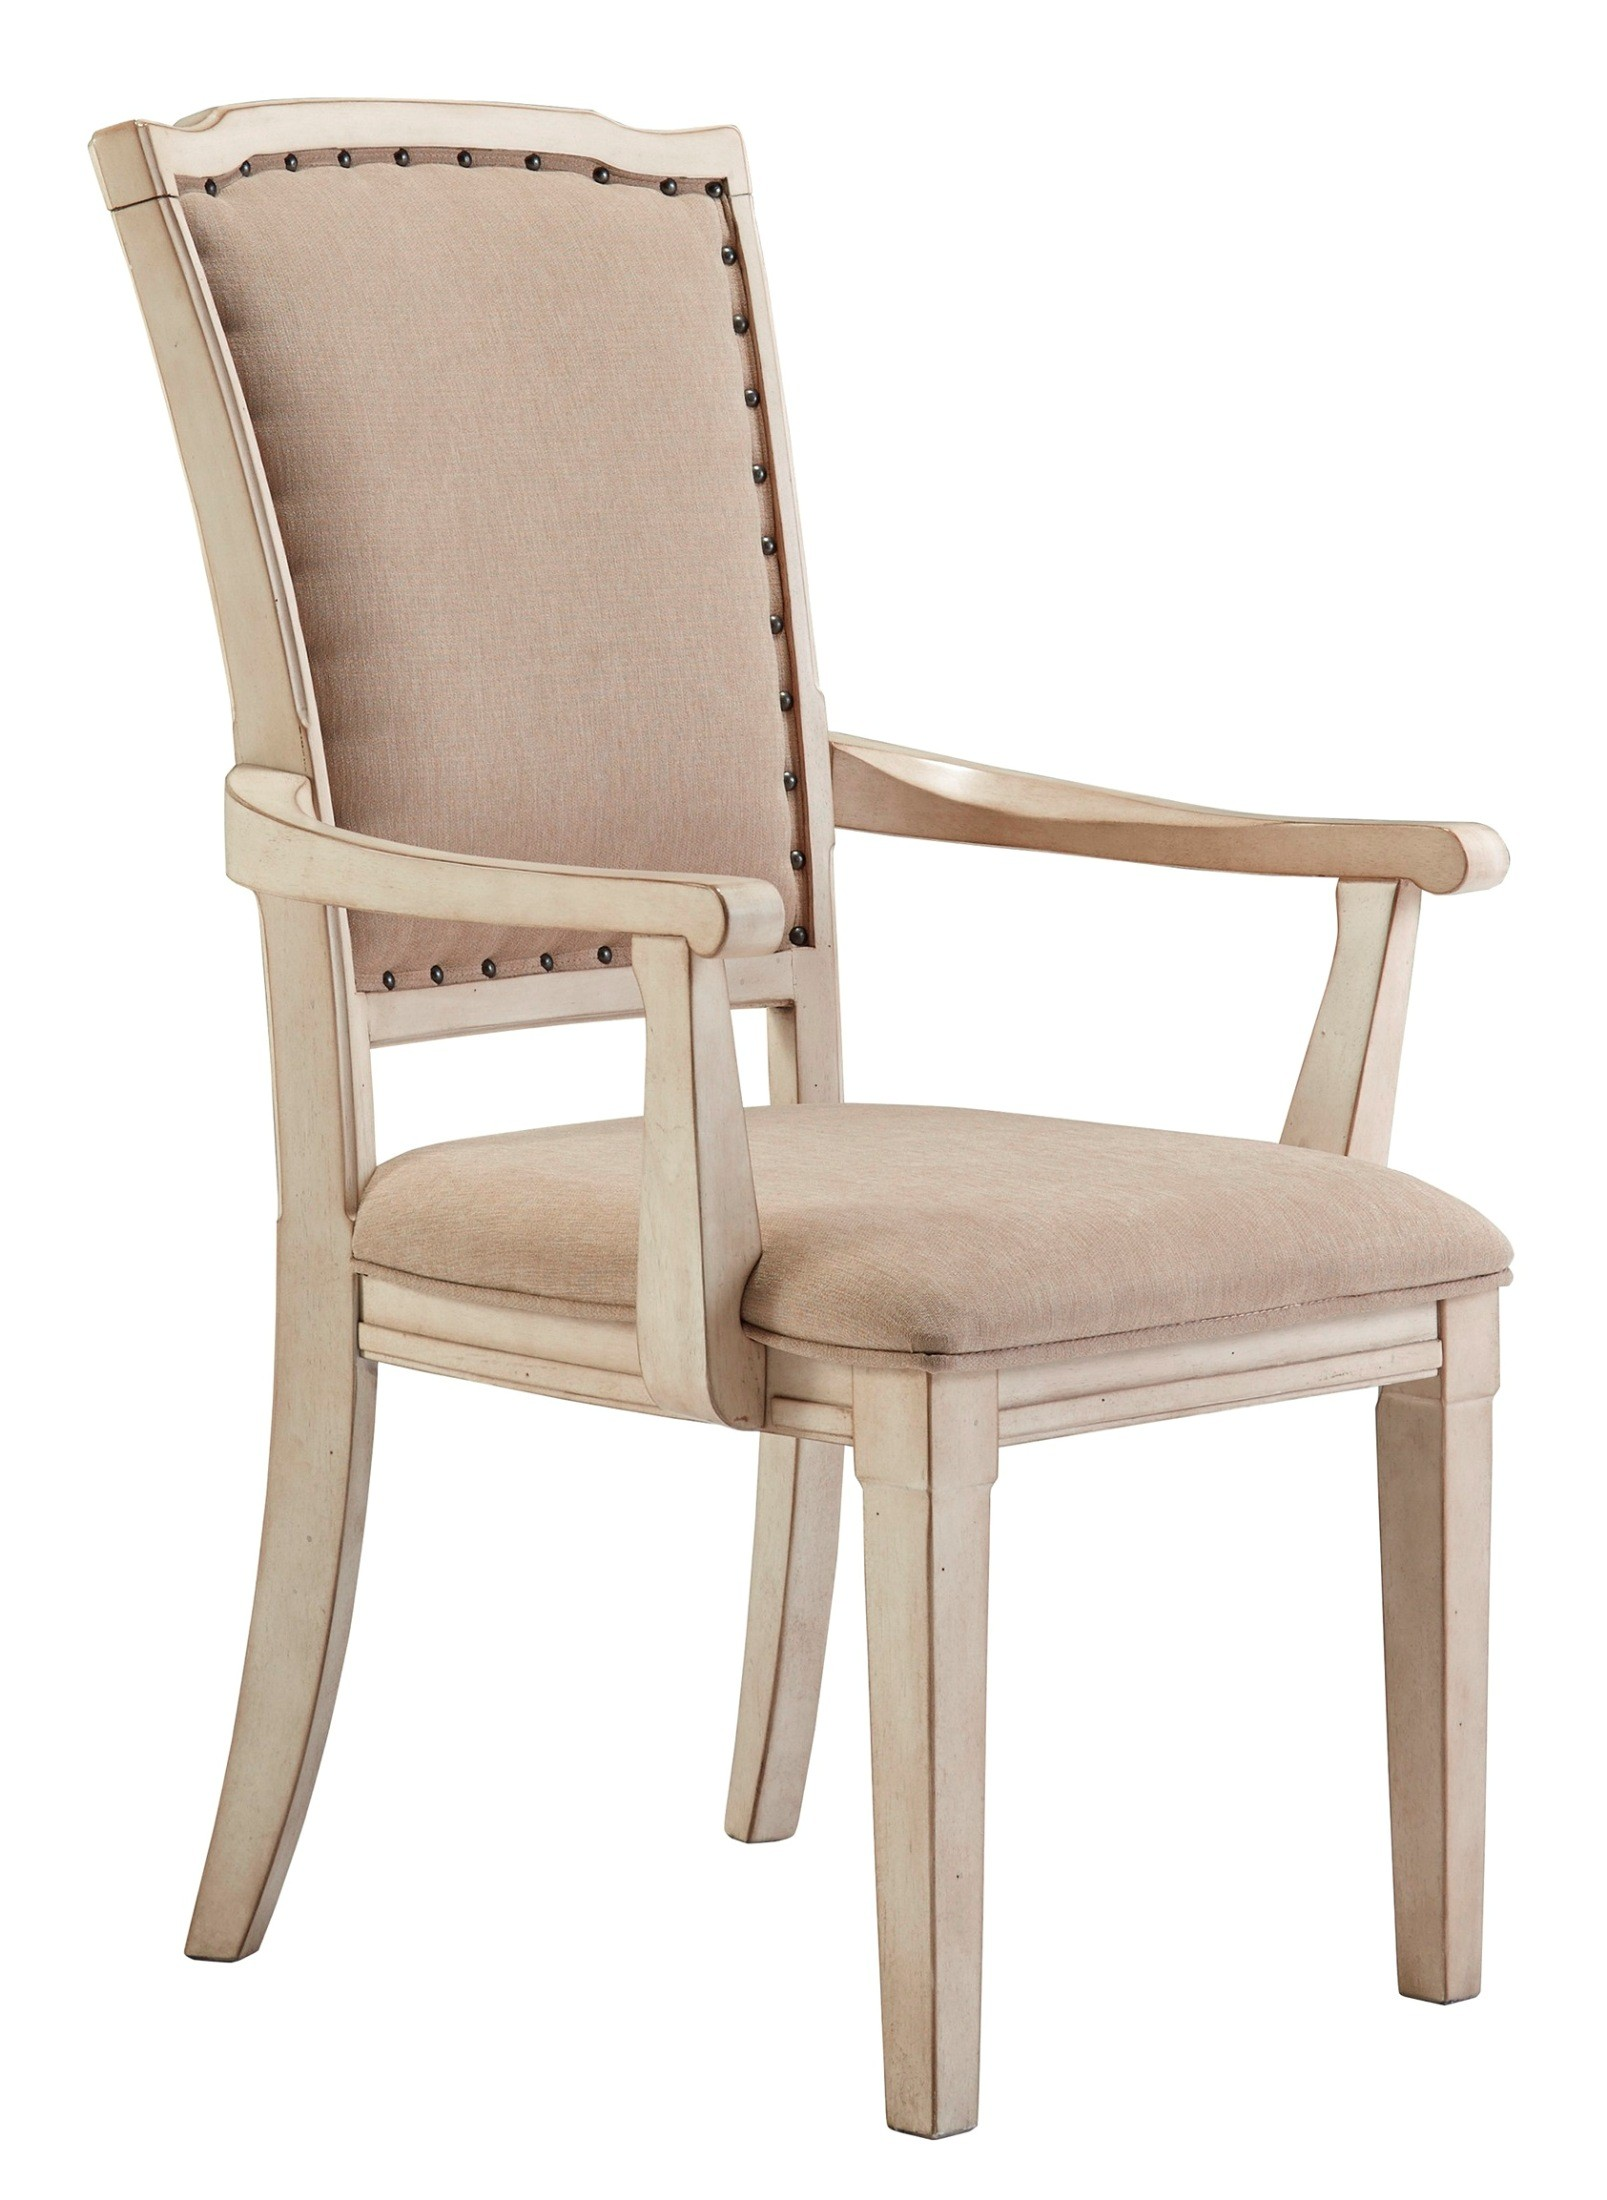 Demarlos Dining Upholstered Arm Chair Set of 2 D693 01A